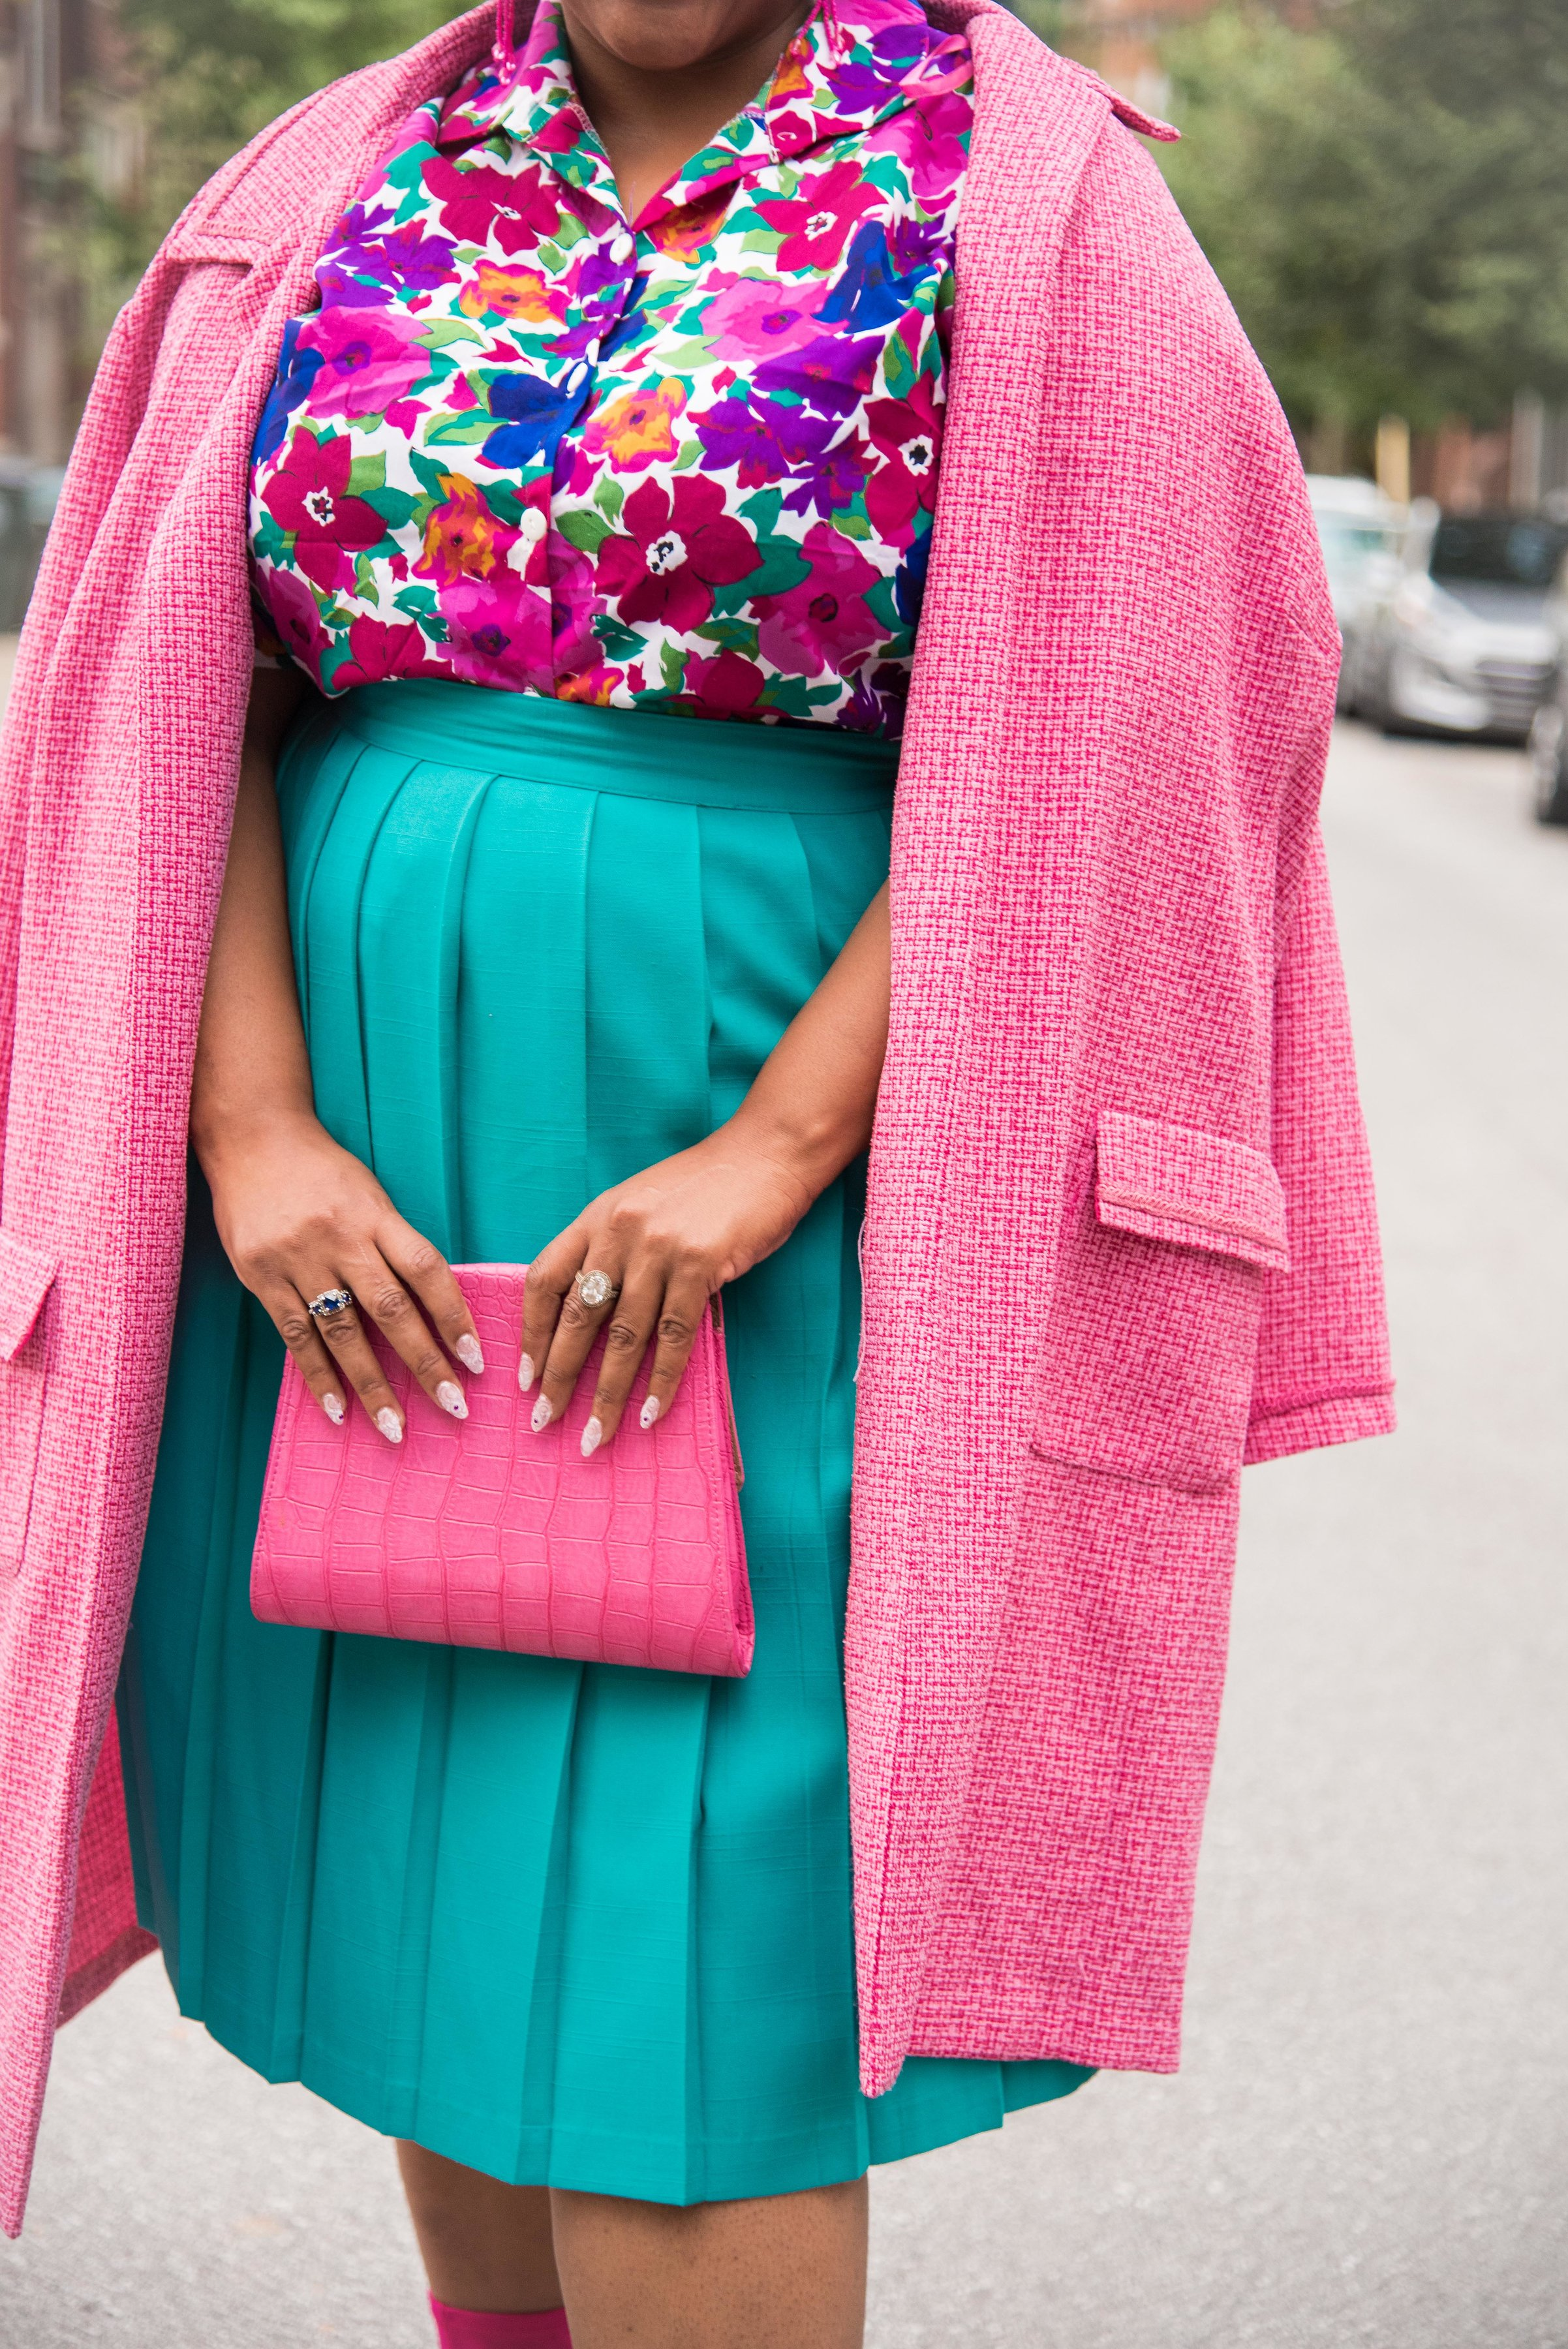 4 Basic Ways to Incorporate Color - Into Your Fall Looks